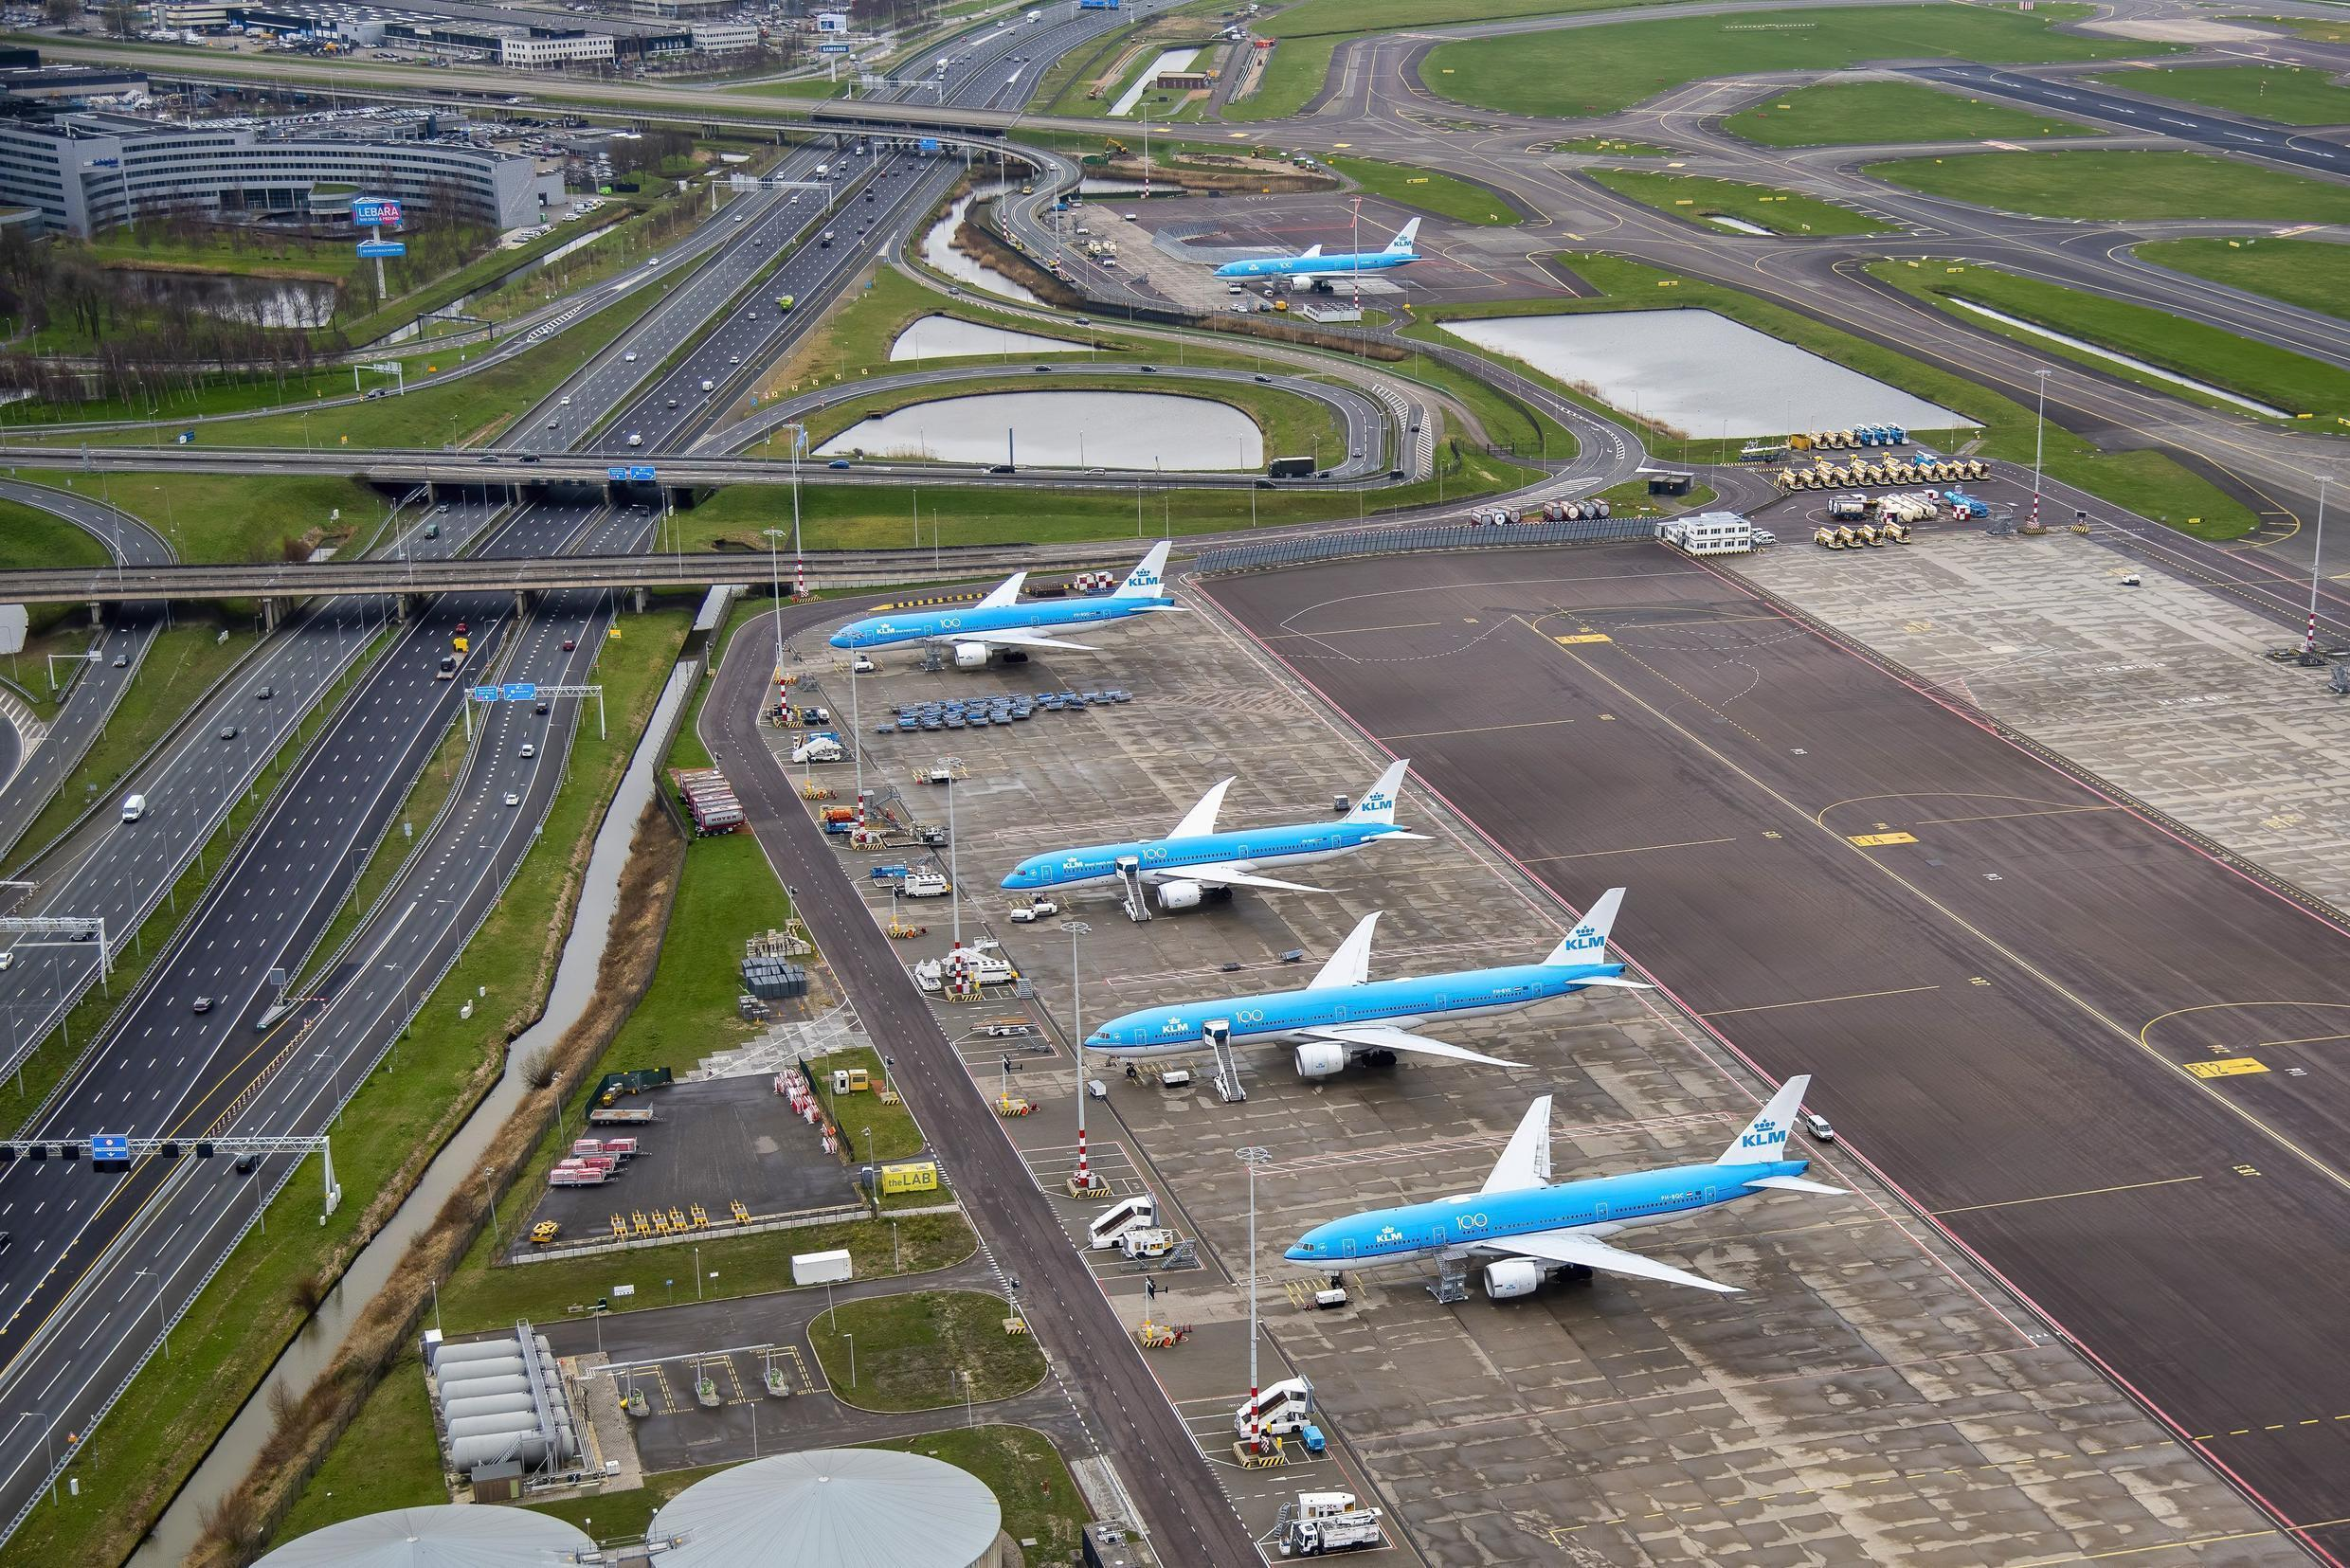 Dutch airline KLM planes parked on the tarmac of the Schiphol Airport, Amsterdam, on March 19, 2020 as several airlines cancel their flights related to the COVID-19 outbreak hitting Europe. Air France-KLM is slashing 90 percent of its flights.